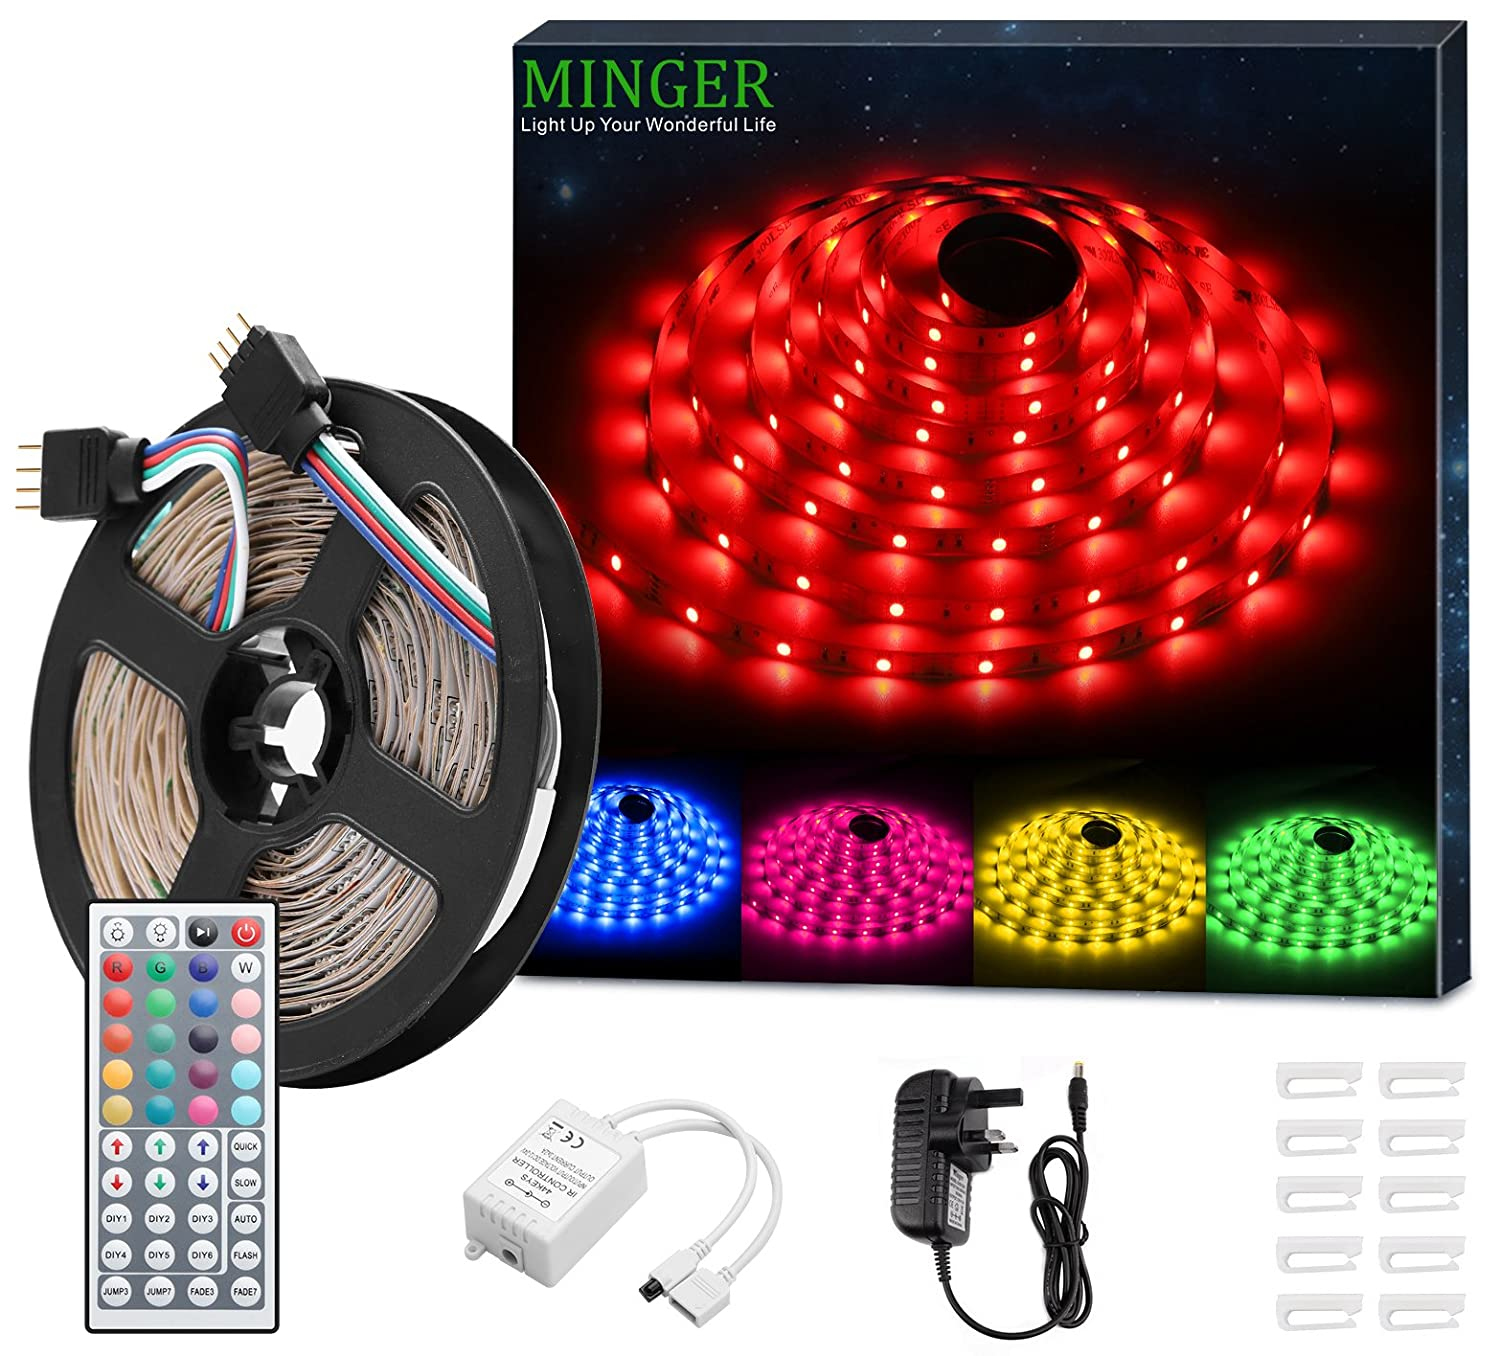 Led Strip Light Minger 16.4ft(5m)Rgb Smd 5050 Led Rope Lighting Color Changing Full Kit With 44 Keys Ir Remote Controller & 2 A Power Supply Led Lighting Strips For Home Lighting Kitchen Christmas Indoor Decoration by Amazon